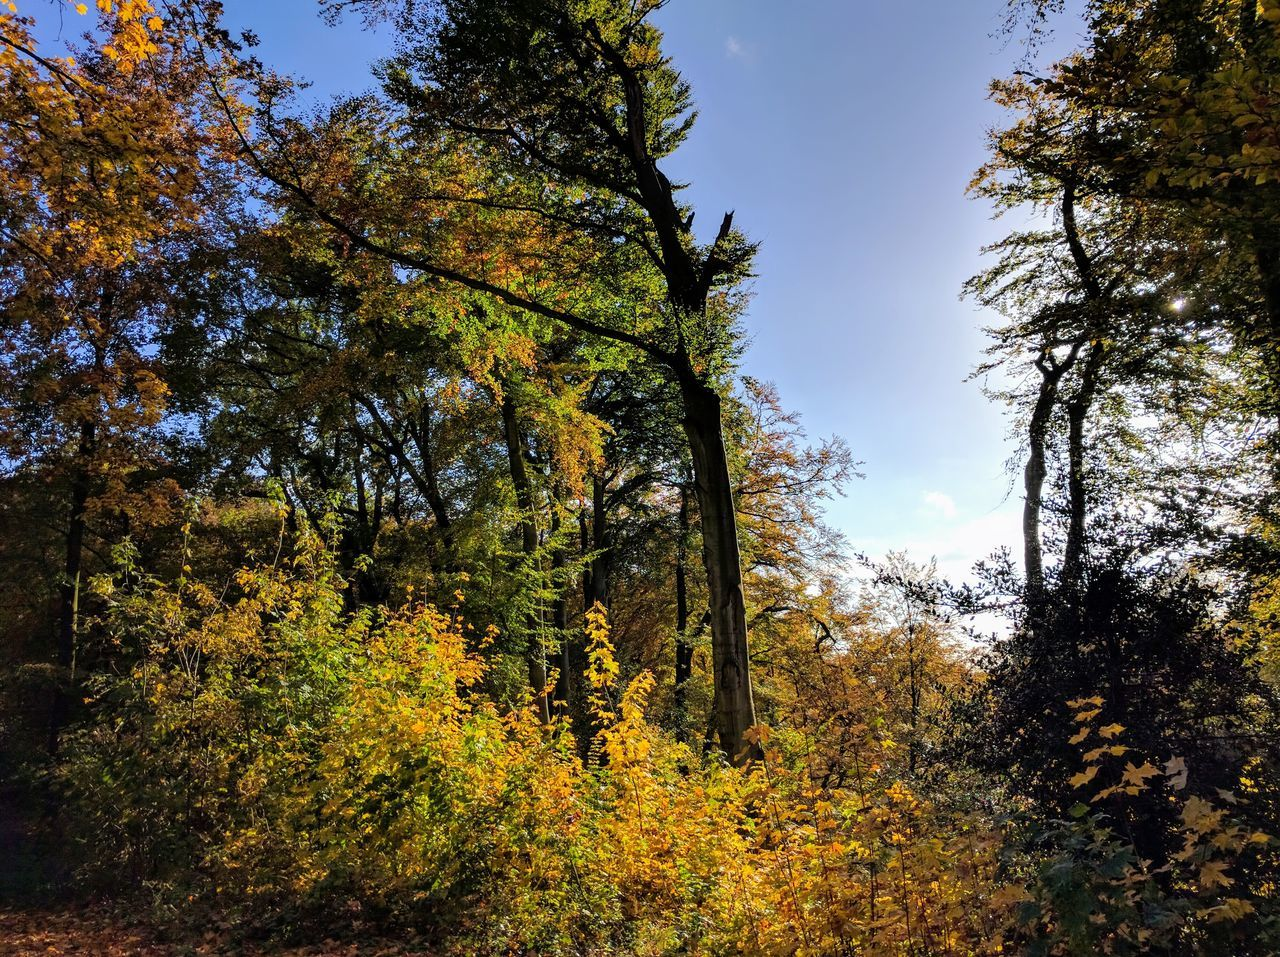 tree, autumn, nature, beauty in nature, forest, scenics, leaf, change, tranquility, growth, tranquil scene, no people, day, non-urban scene, outdoors, sky, low angle view, landscape, branch, tree trunk